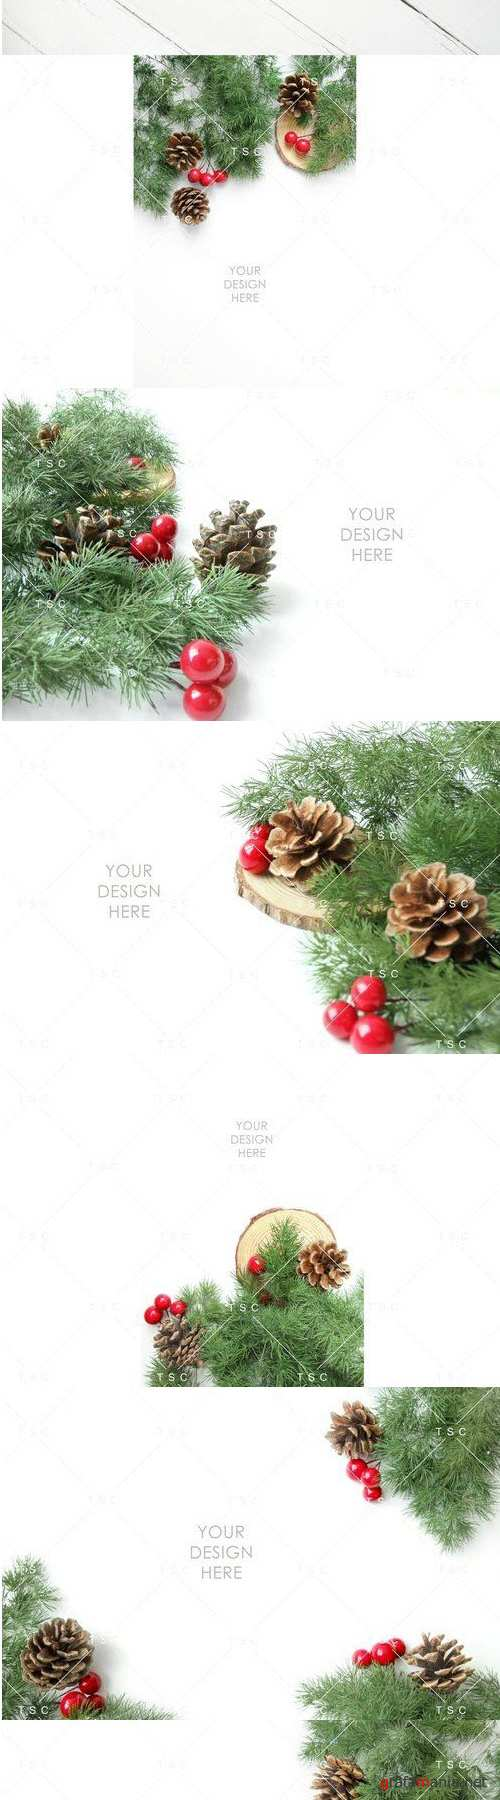 Christmas Stock Photo Bundle - 4316181